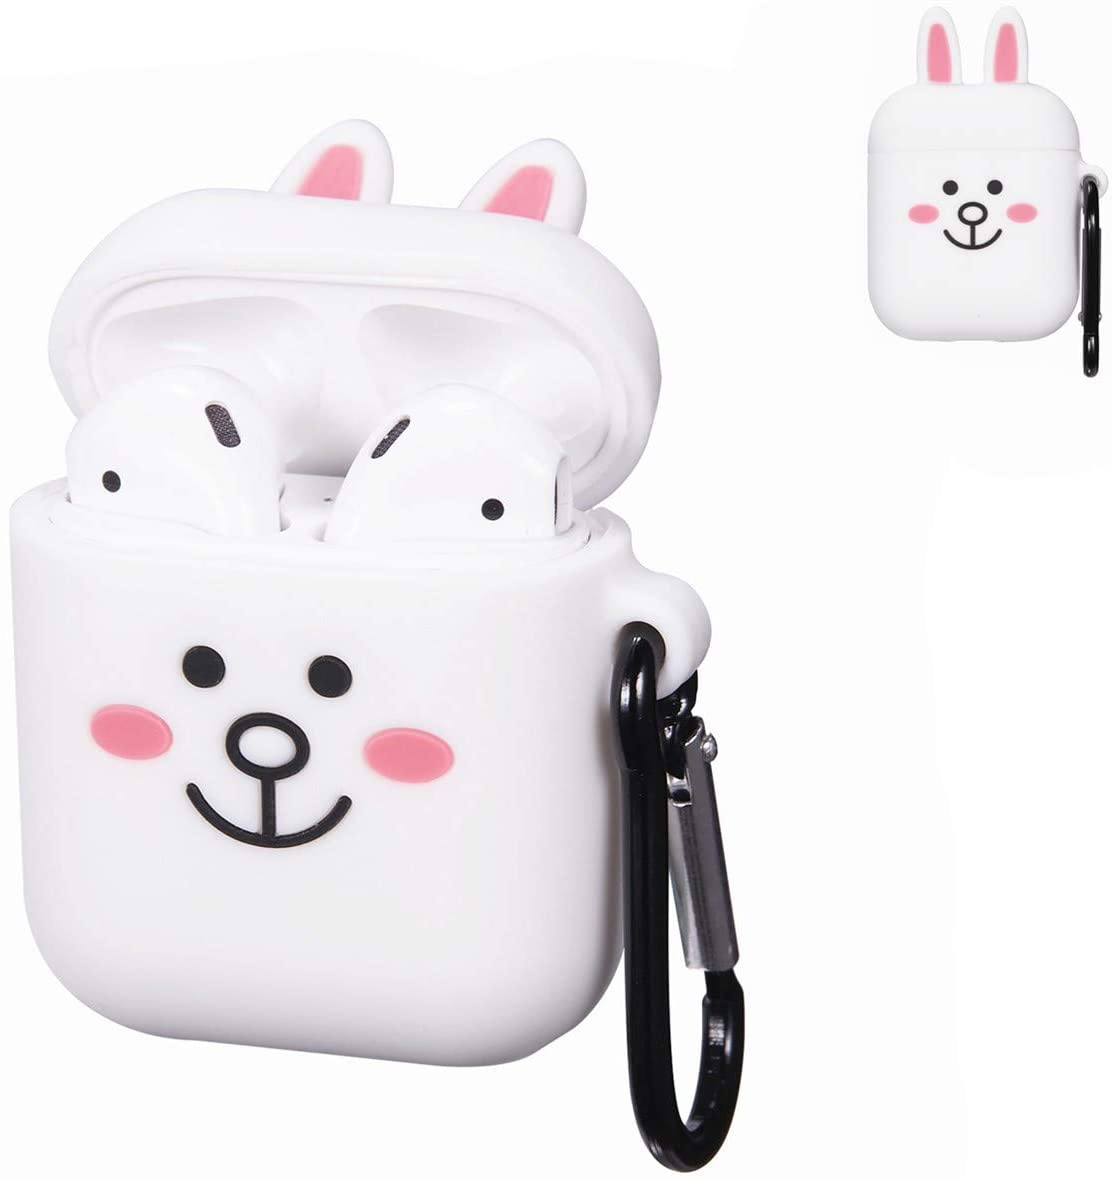 Punswan Cony Rabbit White Airpod Case for Airpods 1&2,Cute 3D Funny Cartoon Character Soft Silicone Catalyst Cover,Kawaii Fun Cool Keychain Design Skin,Fashion Cases for Girls Kids Boys Air pods